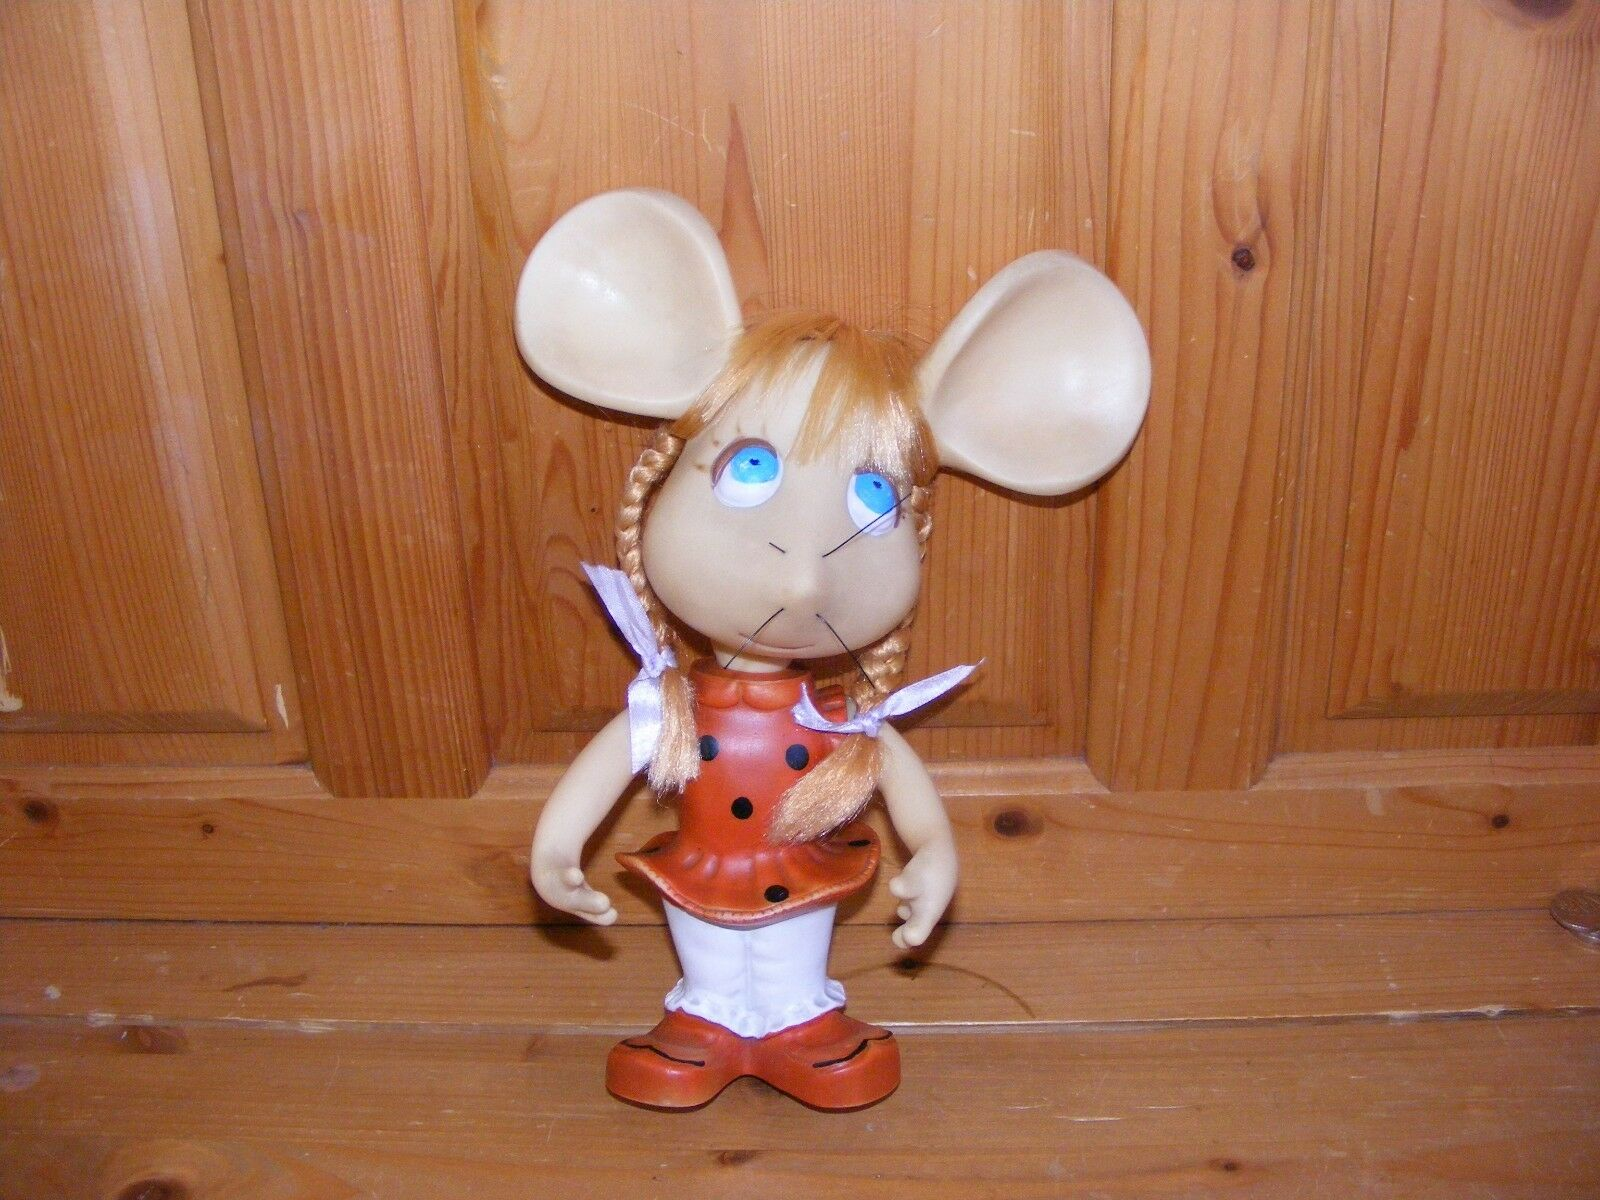 Rosie - Topo Gigio's Girlfriend. Doll   Toy. 1960s Vintage